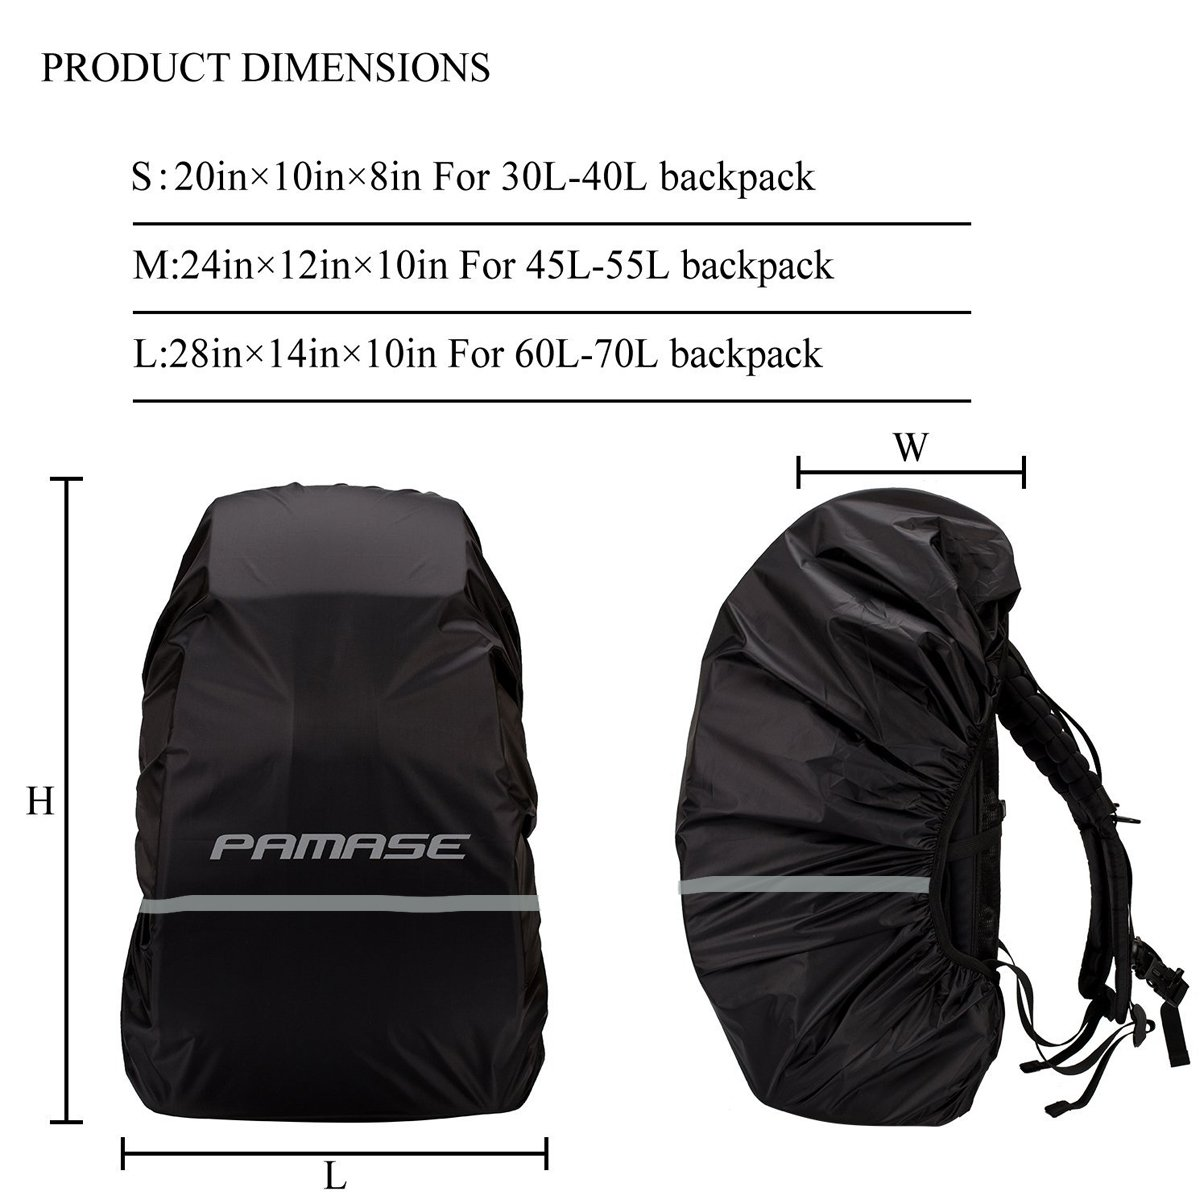 de56744c6a52 Mua sản phẩm PAMASE Waterproof Backpack Pack Rain Cover 30-70L with ...